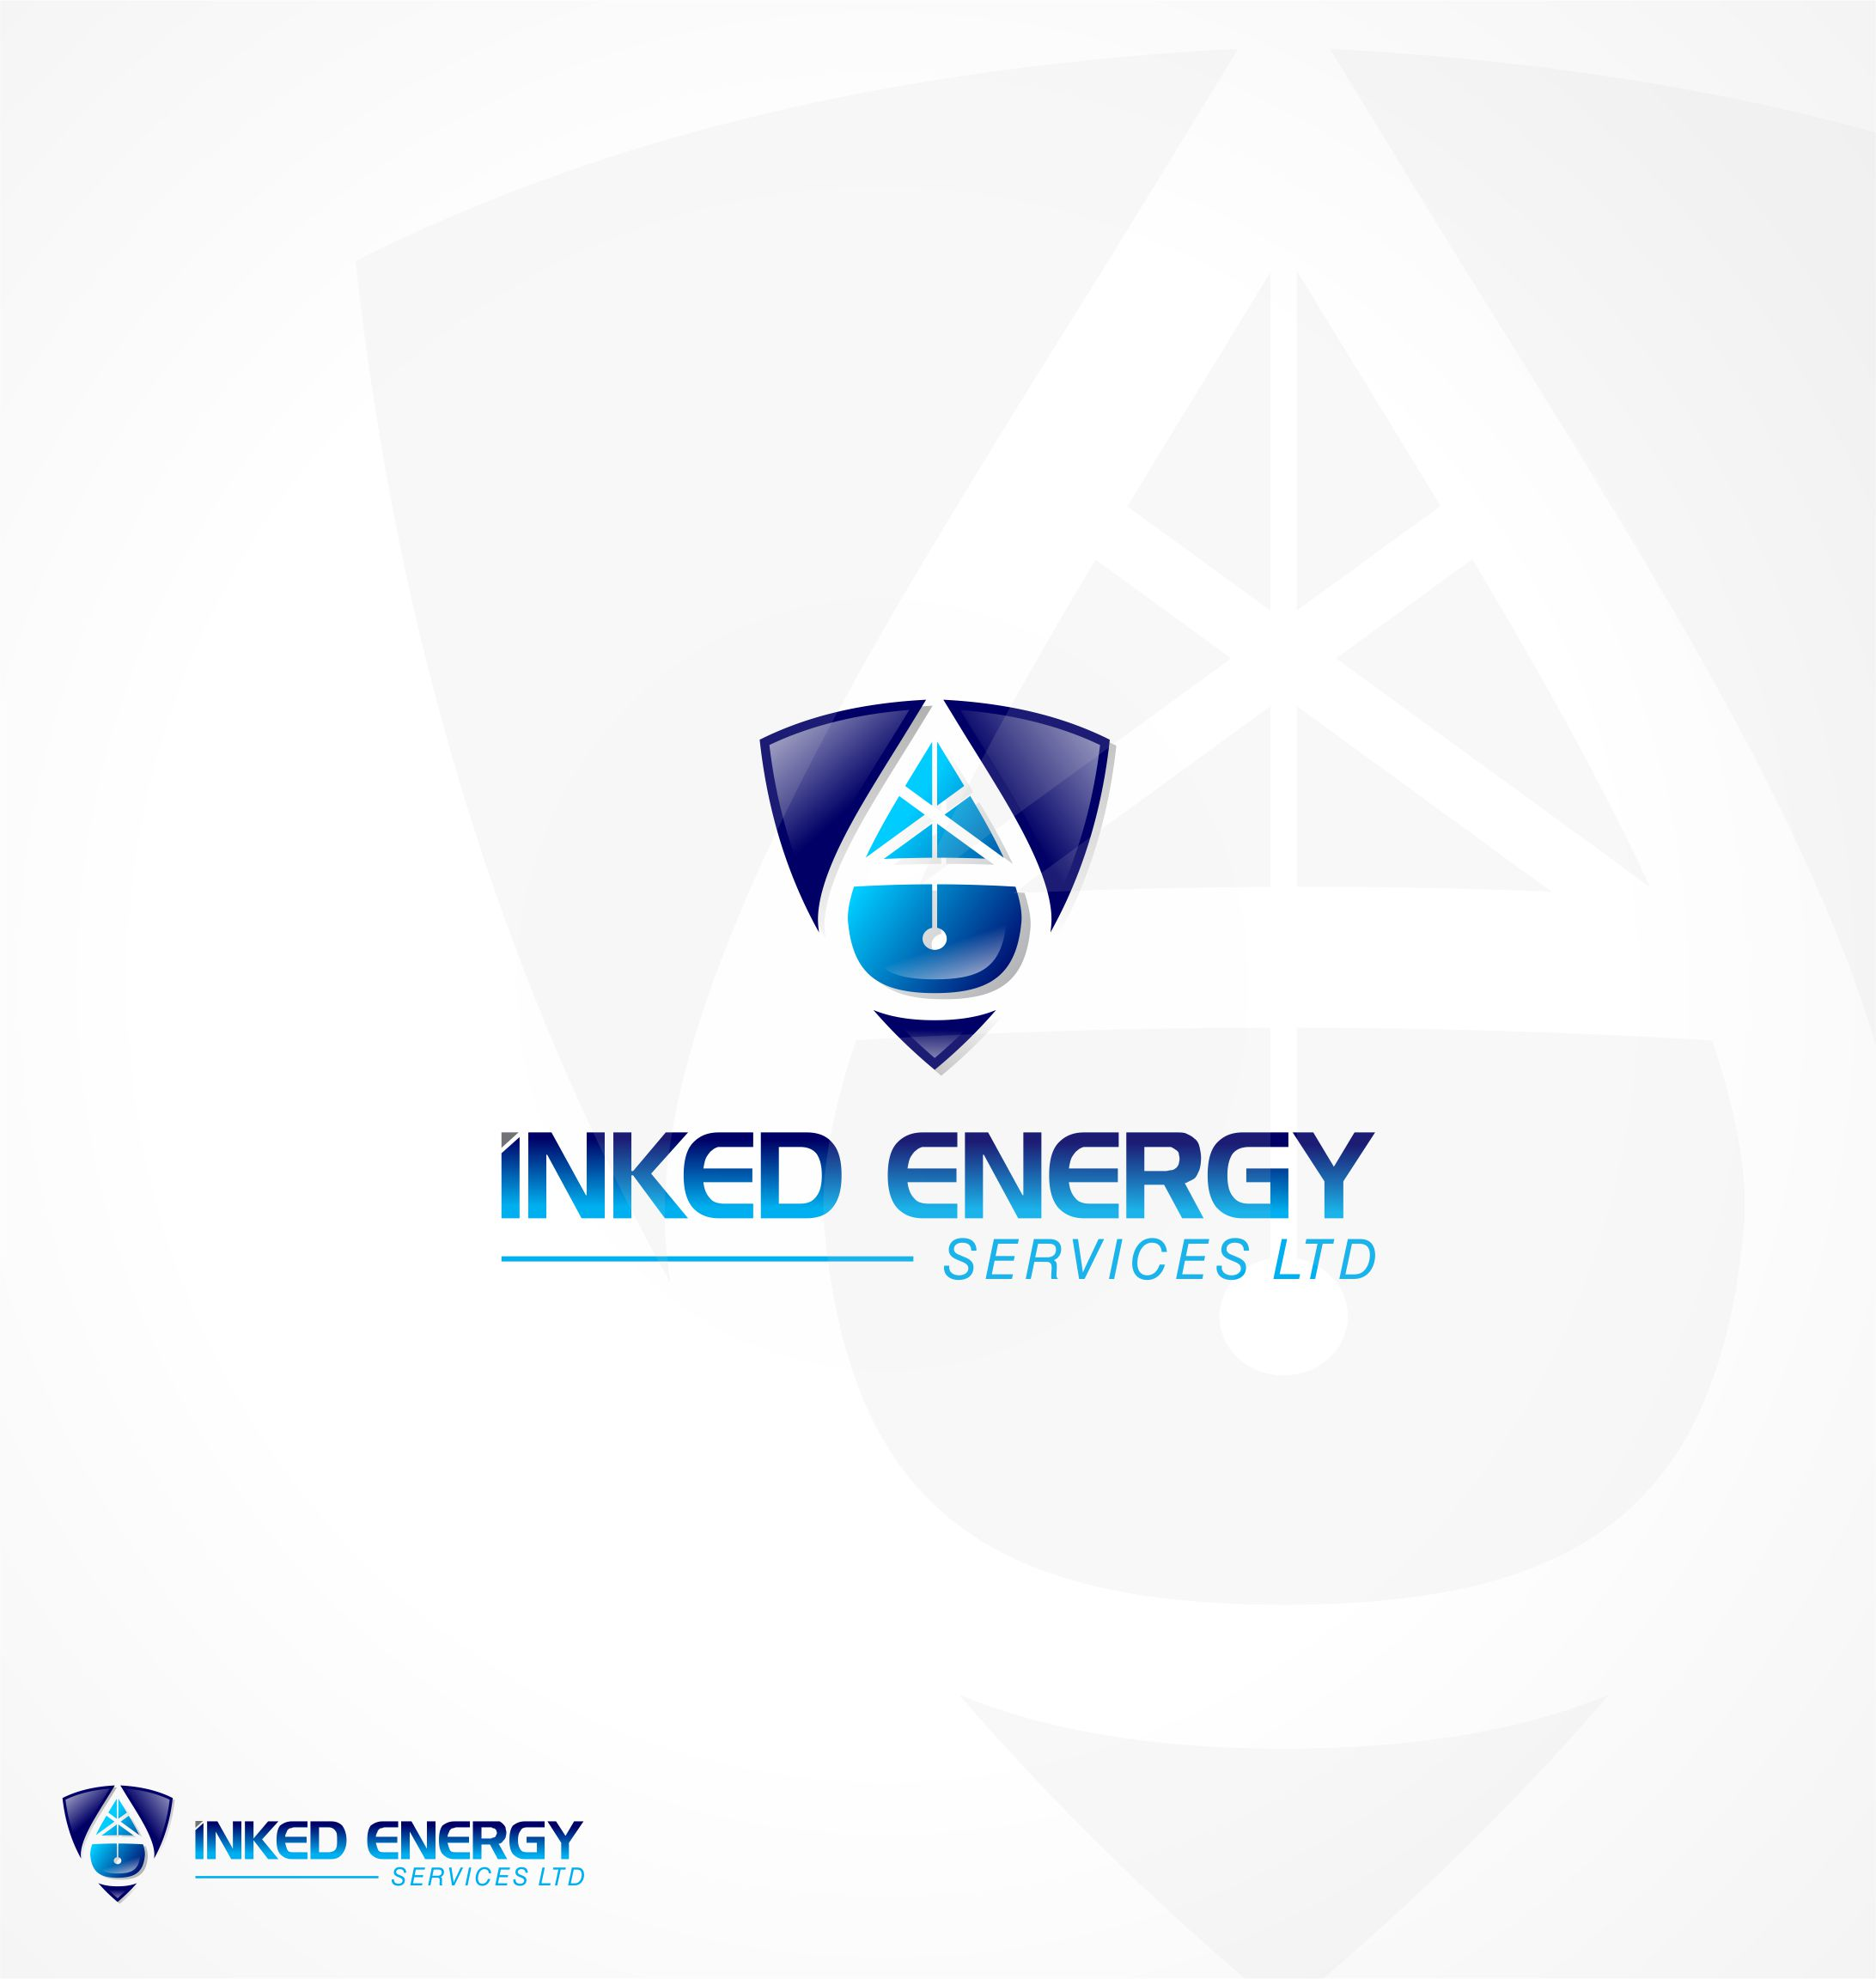 Logo Design by Raymond Garcia - Entry No. 152 in the Logo Design Contest Creative Logo Design for INKED ENERGY SERVICES LTD.